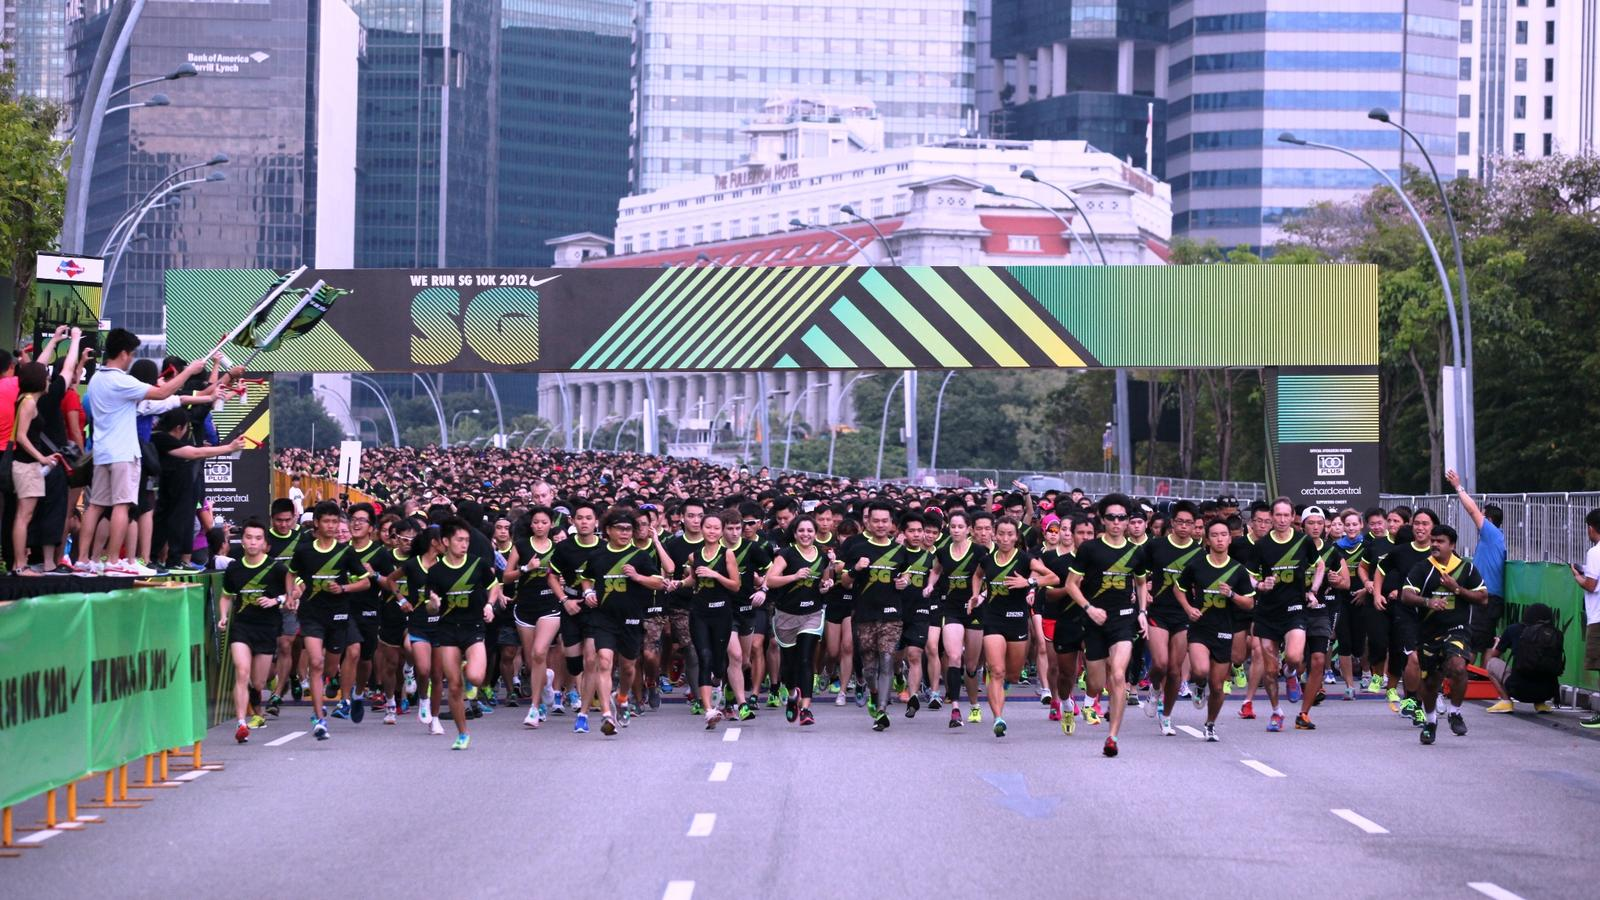 Nike_We_Run_SG_flags_off_against_the_Singapore_Business_District